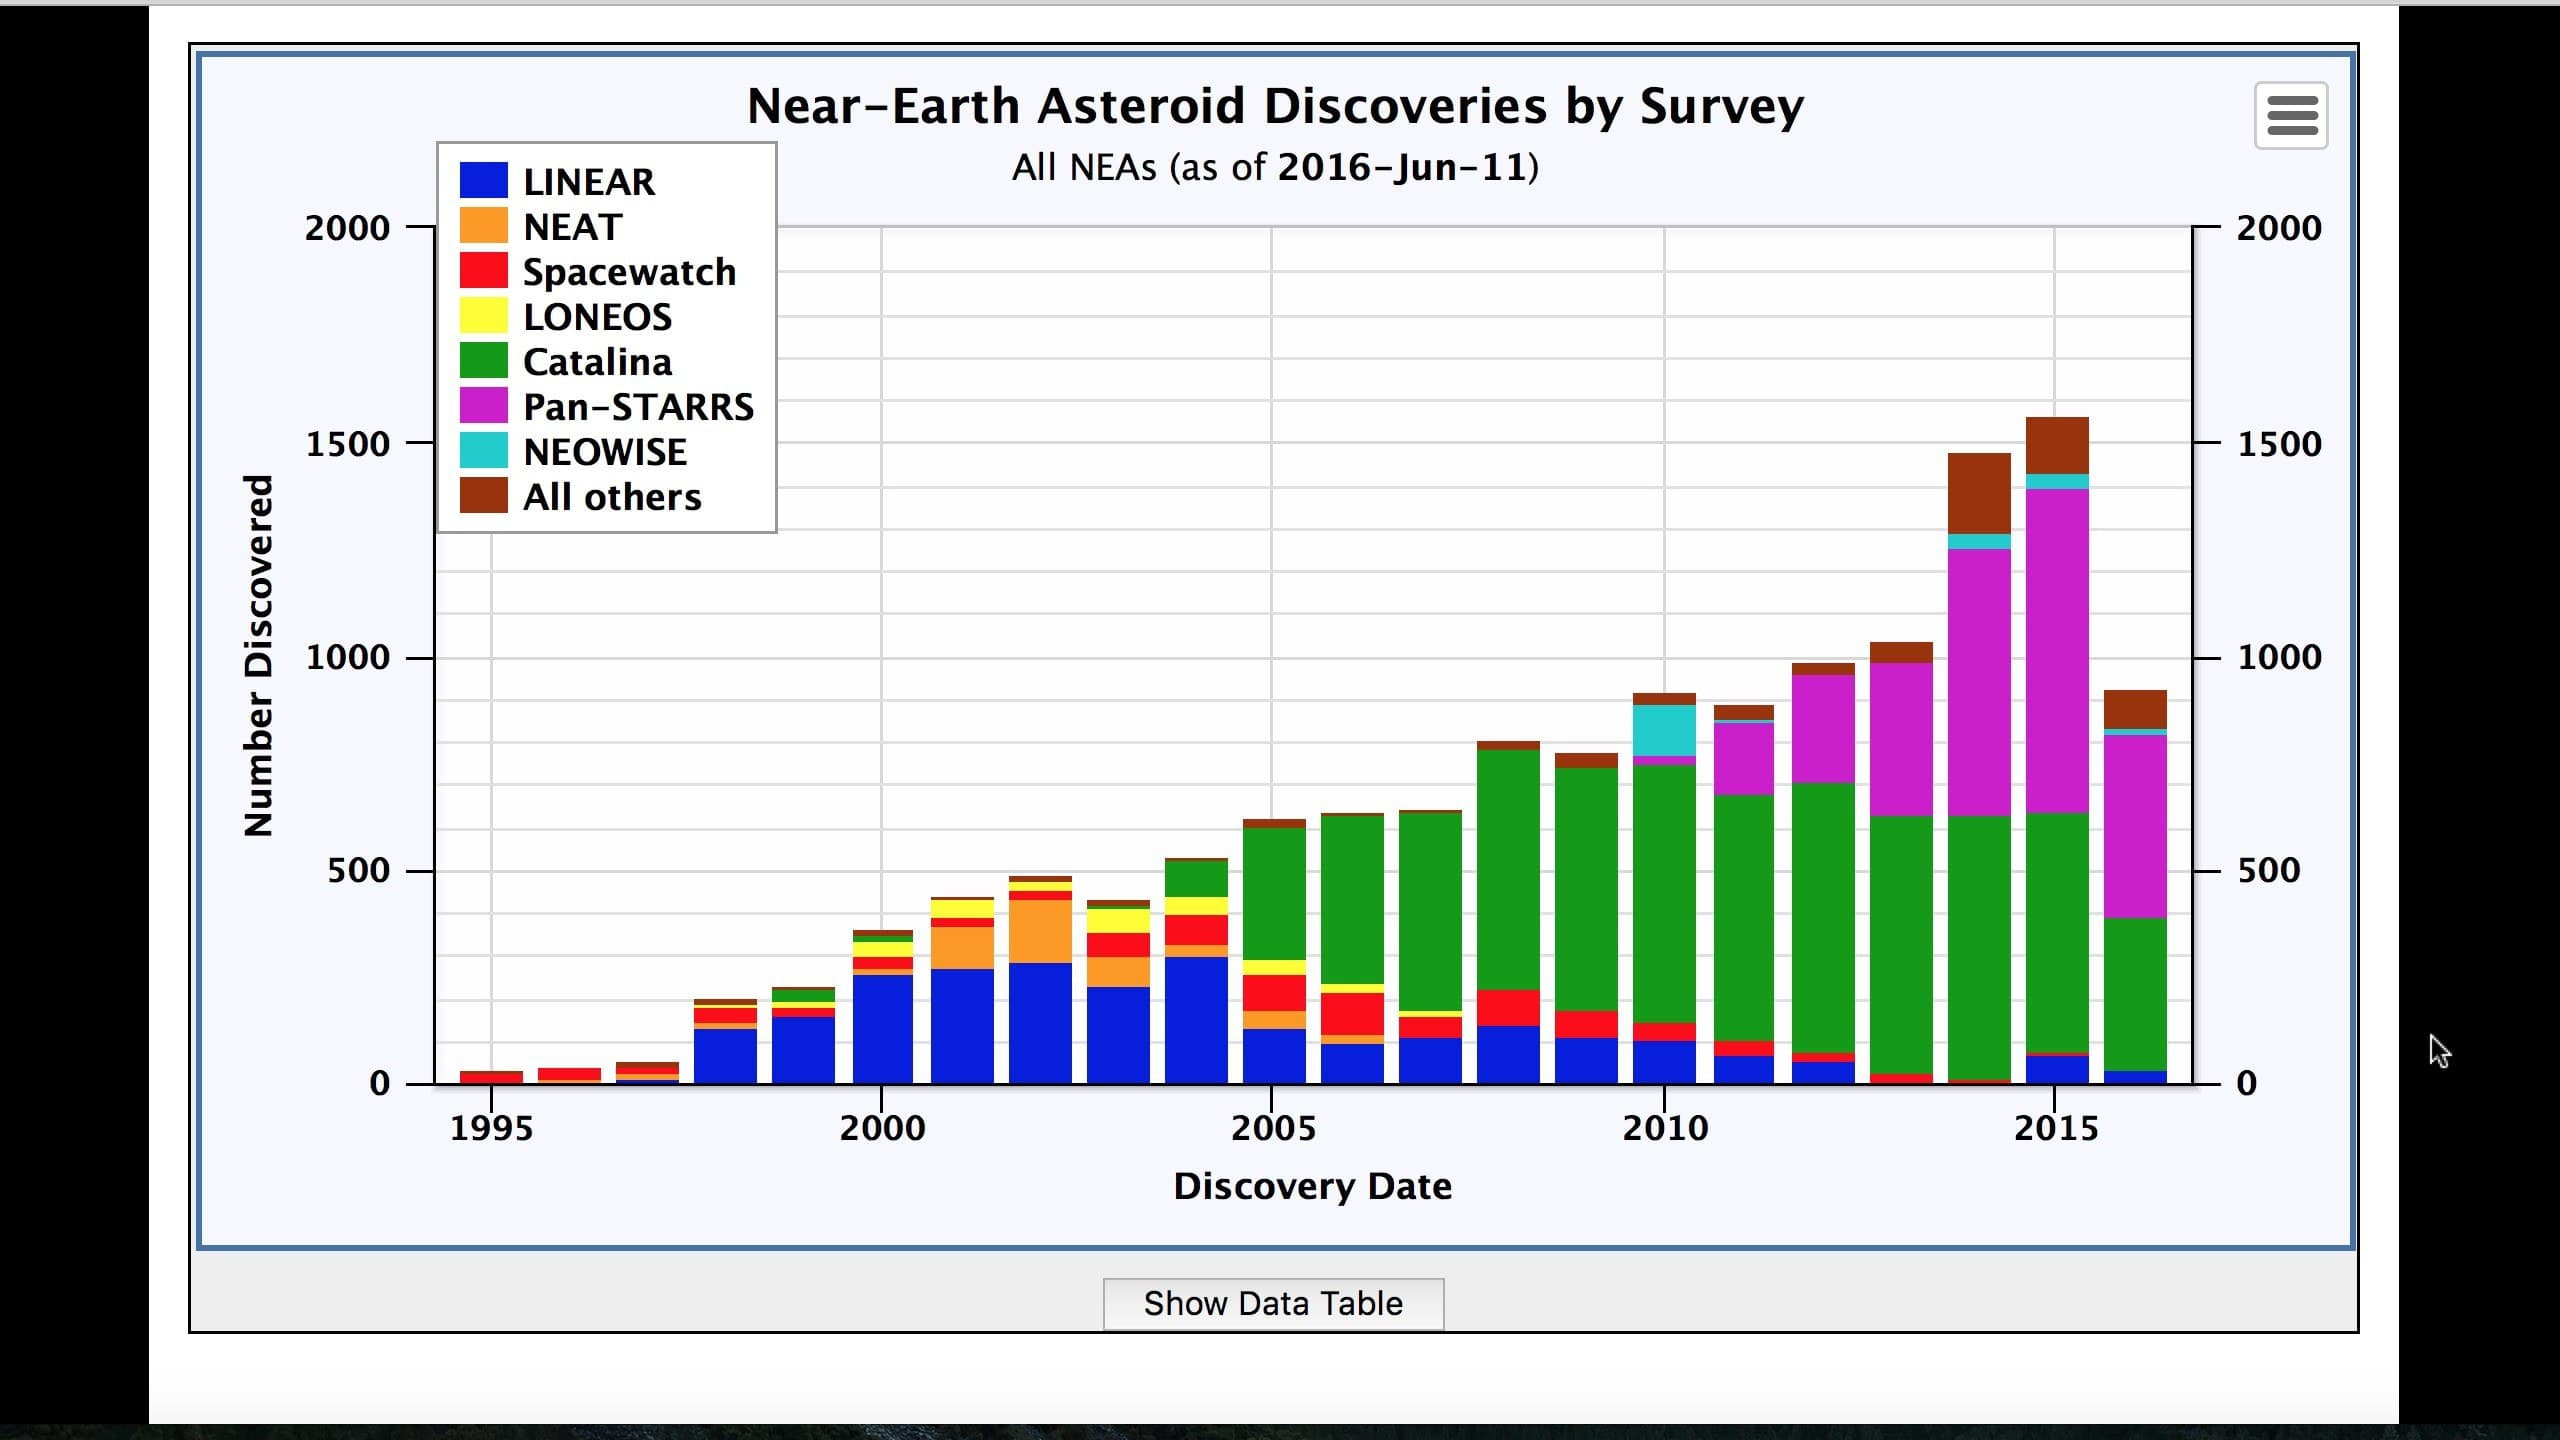 Near Earth Asteroid discoveries by survey.